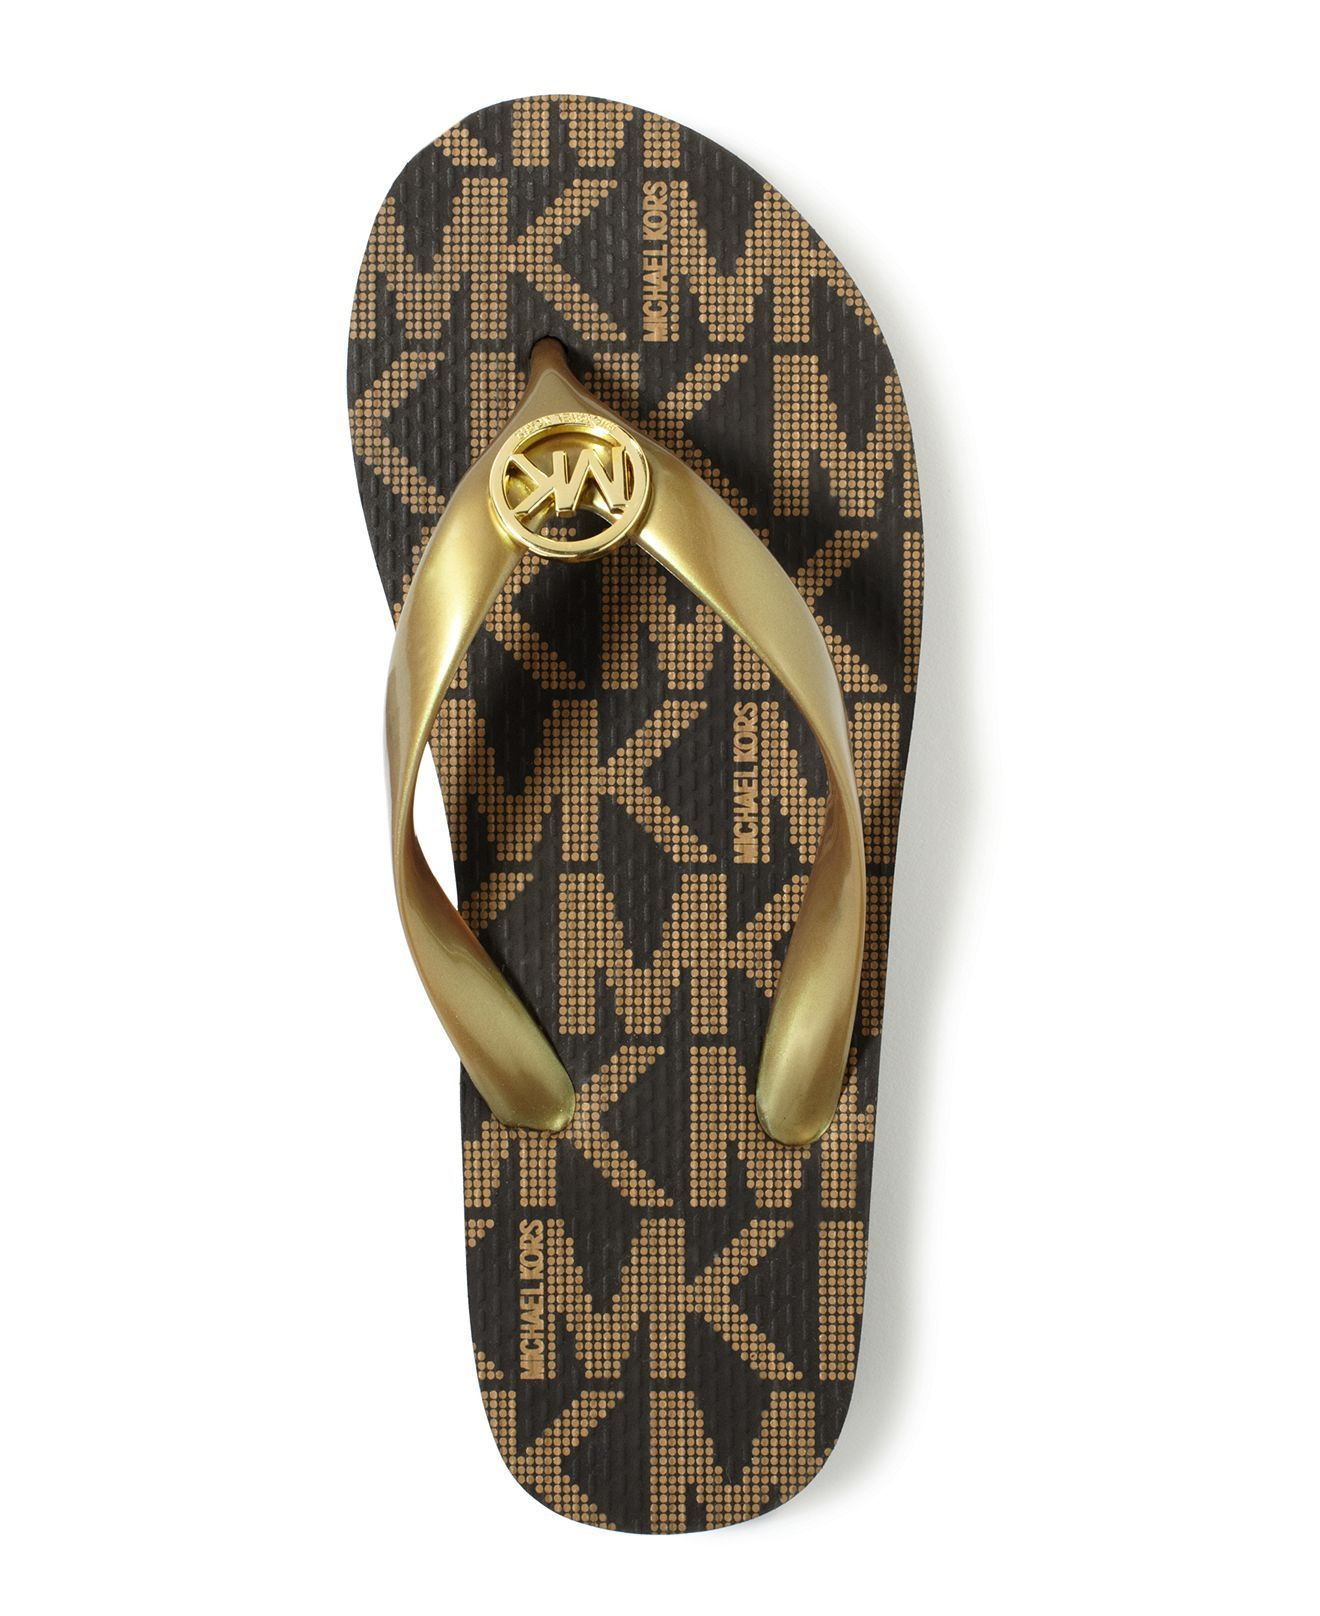 """b1067f69093e5 """"I m pinning this to participate in the Dillard s How I Wear My Kors  Sweepstakes. I could possibly win a Michael Kors handbag valued at  398"""